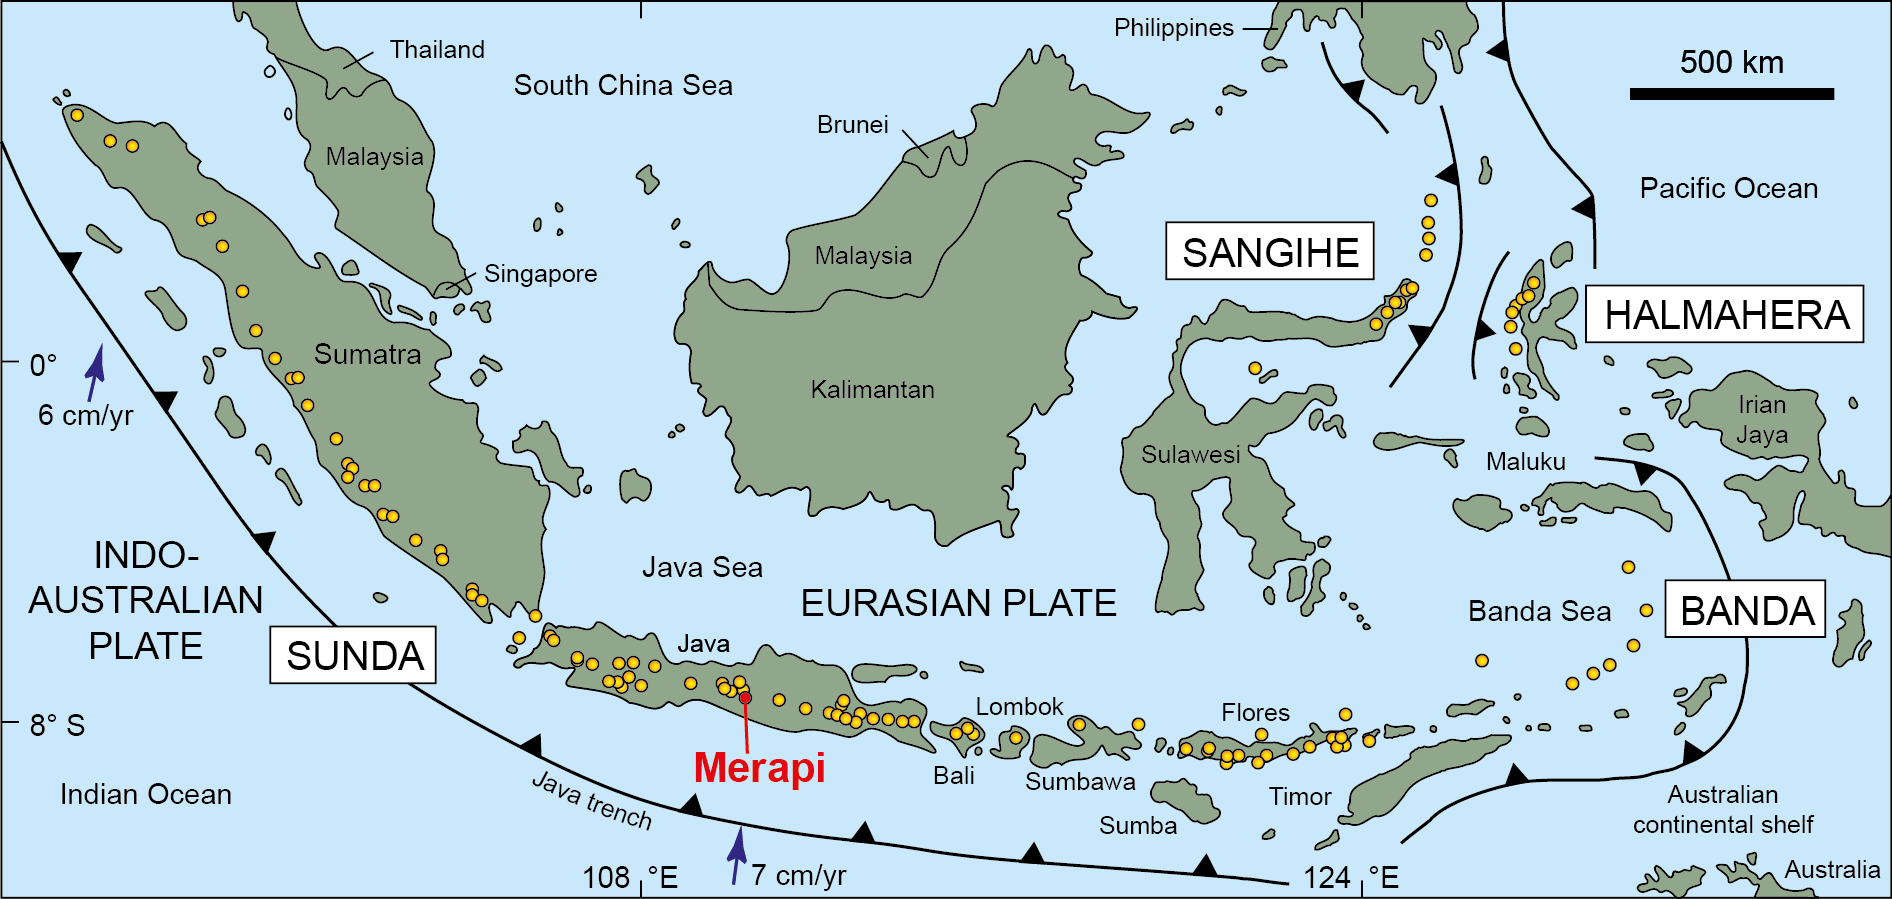 Map of Indonesian subduction zone system showing the distribution of active volcanoes and the location of Merapi. Figure is modified after Gertisser + Keller (2003) Journal of Petrology 44, 457 - 489